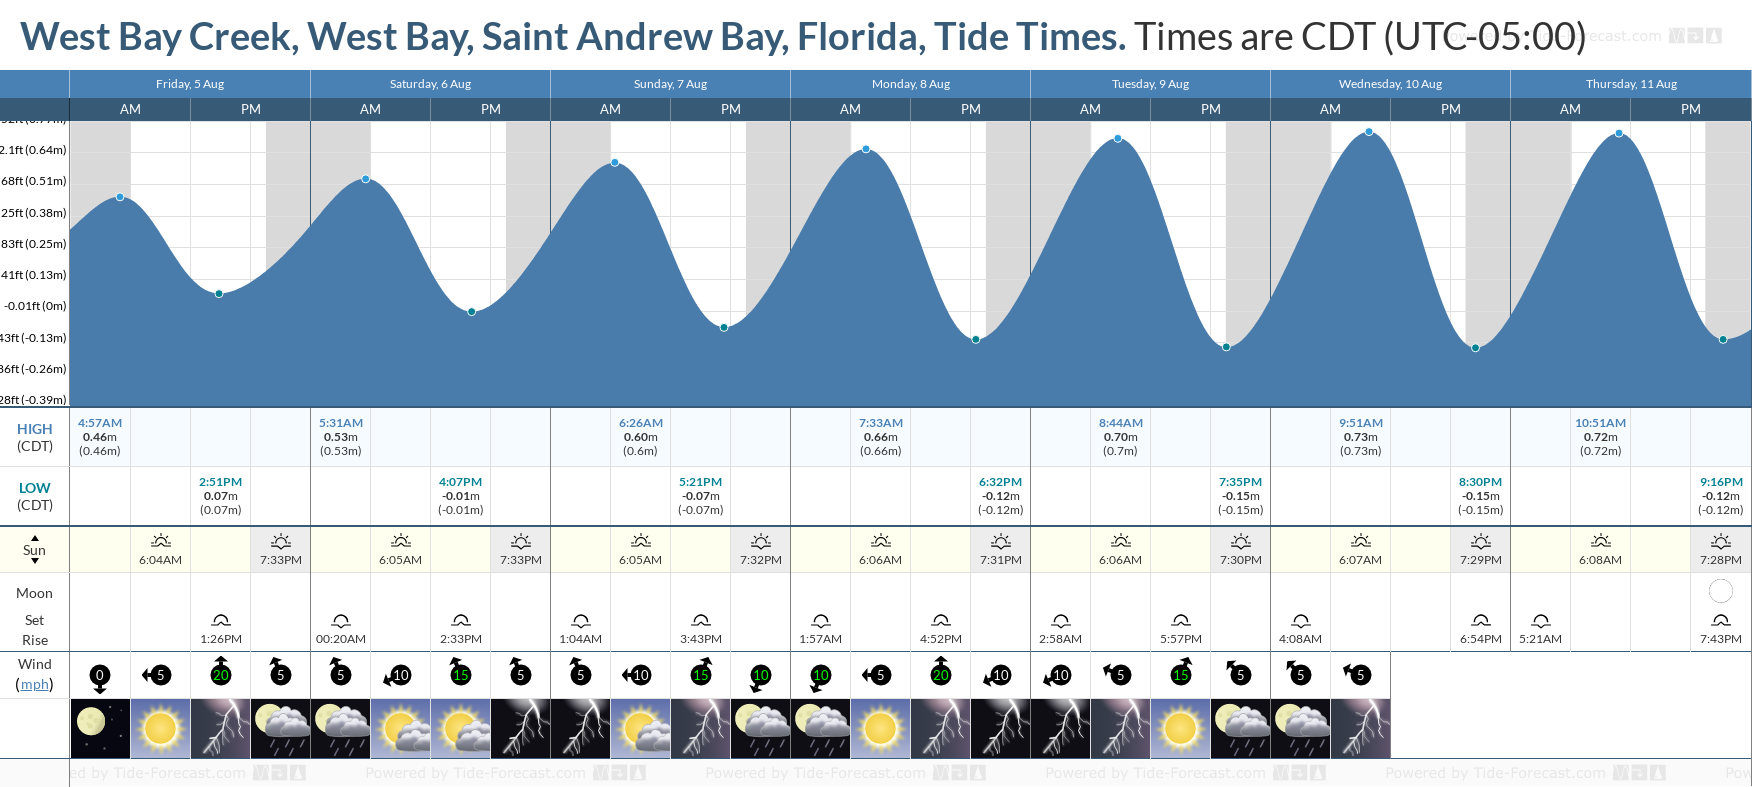 Tide Times And Tide Chart For West Bay Creek West Bay Saint Andrew Bay